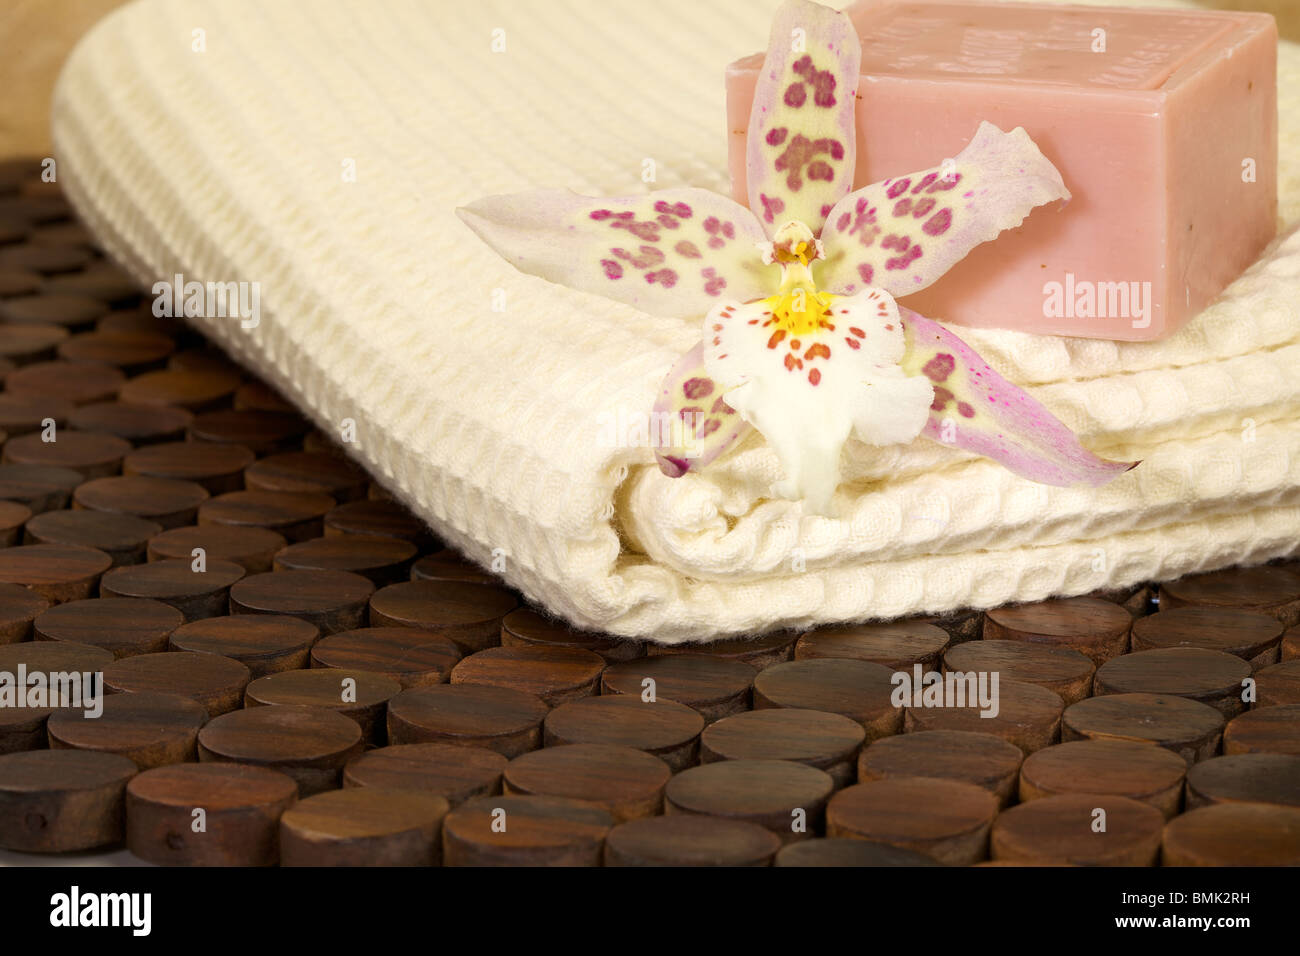 Zen-like scene with flower and candles - Stock Image